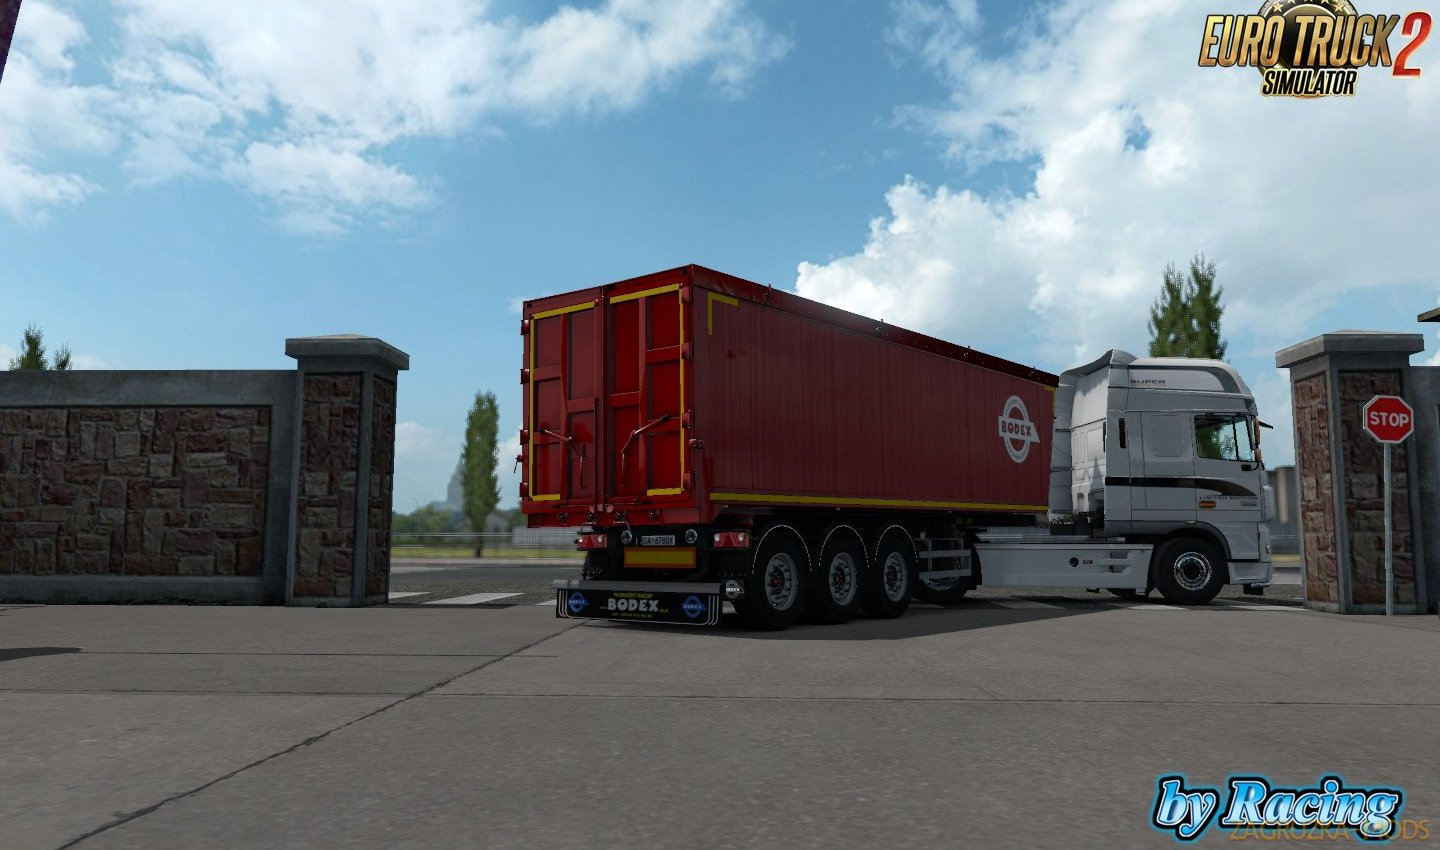 Trailer Bodex KIS 3 v1.2 by Racing (1.34.x)